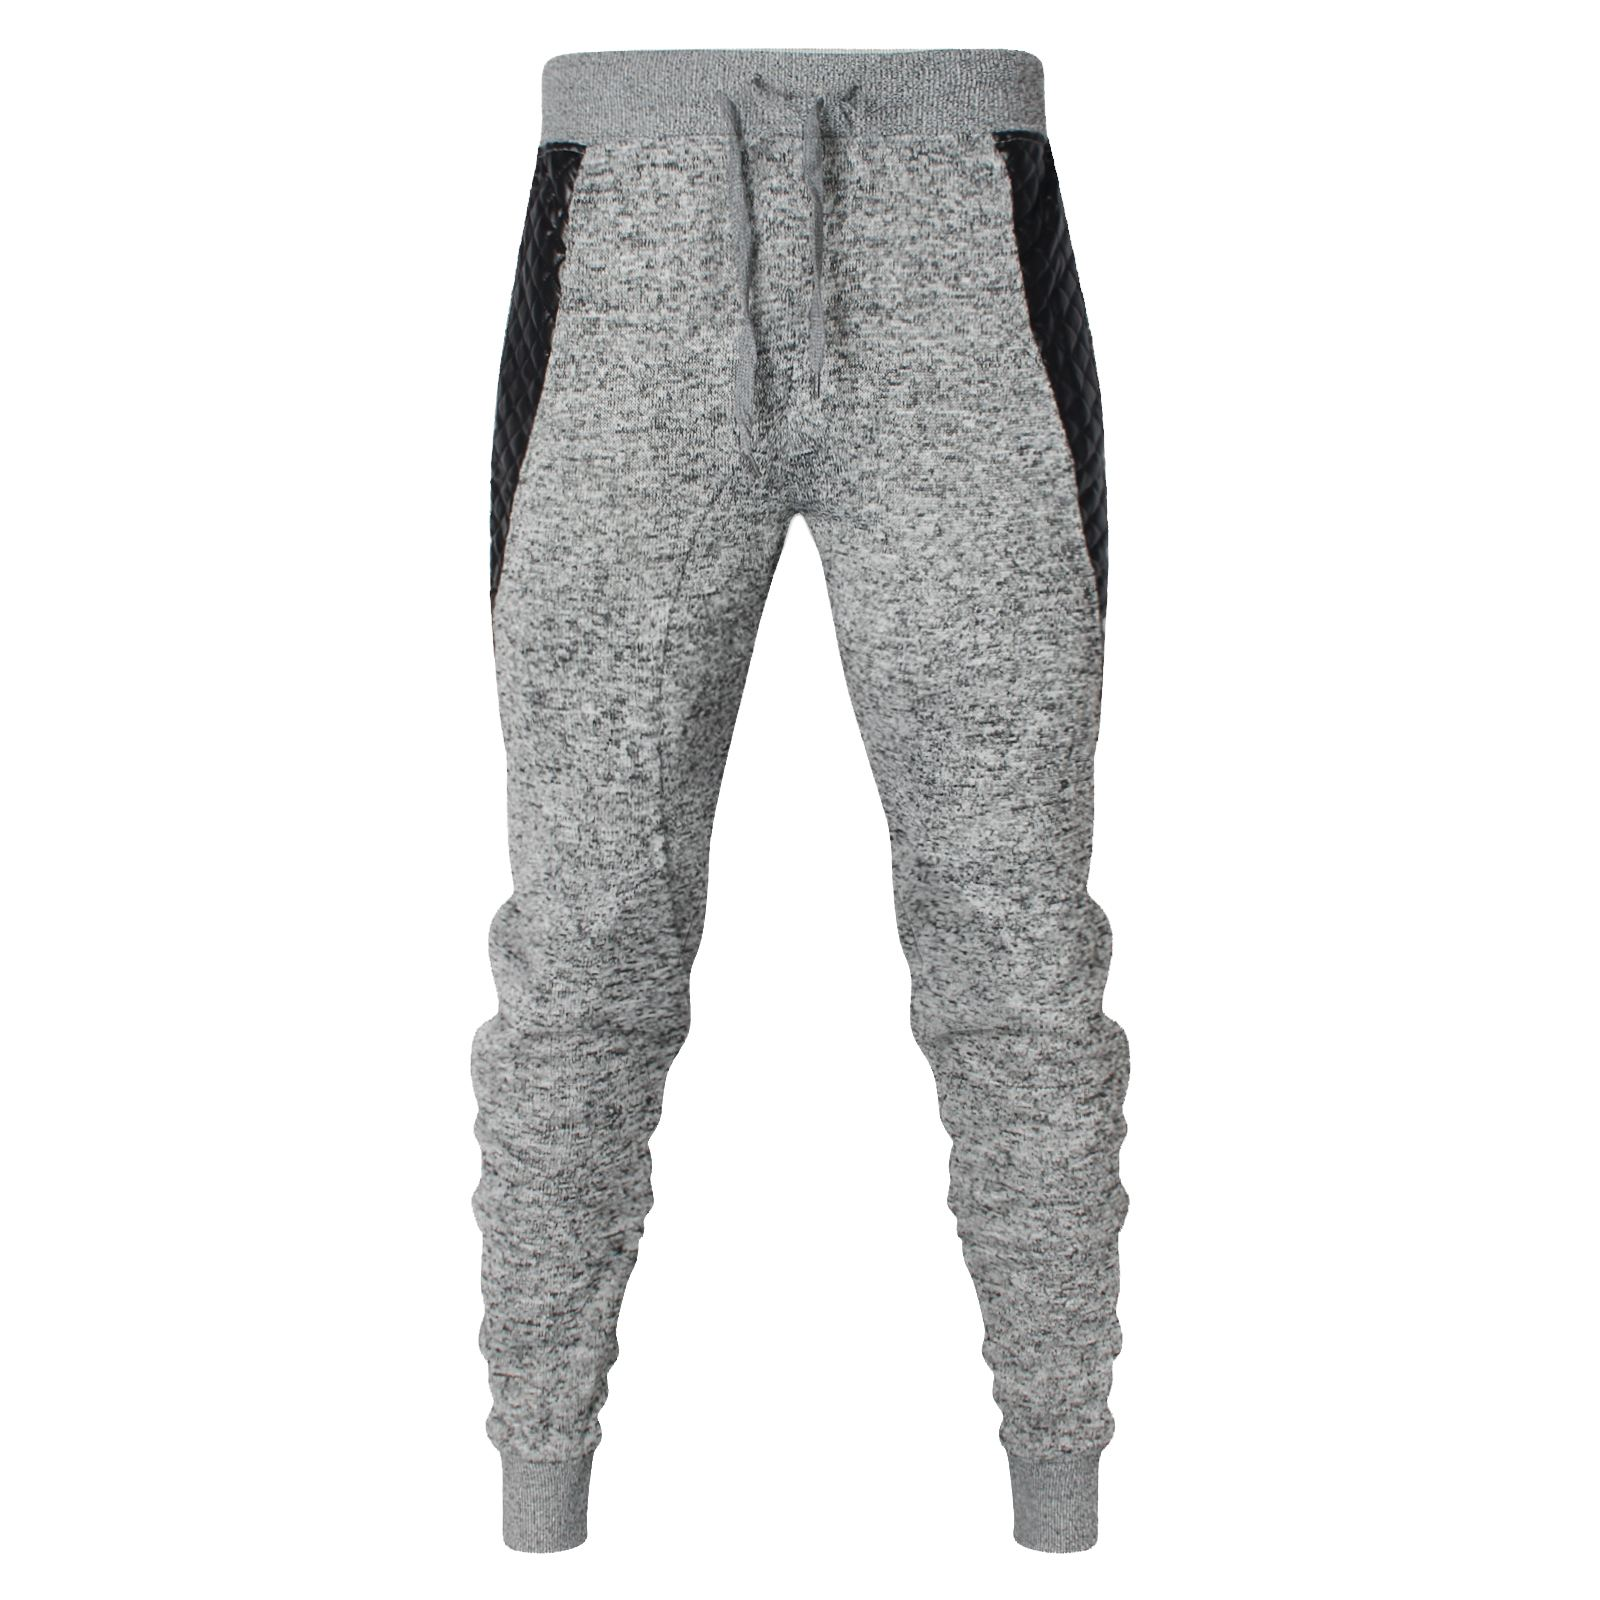 86136be8a5 Details about MENS SLIM FIT SKINNY JOGGING BOTTOMS FLEECE SWEATS PANTS  PATCH WORK GYM TROUSERS